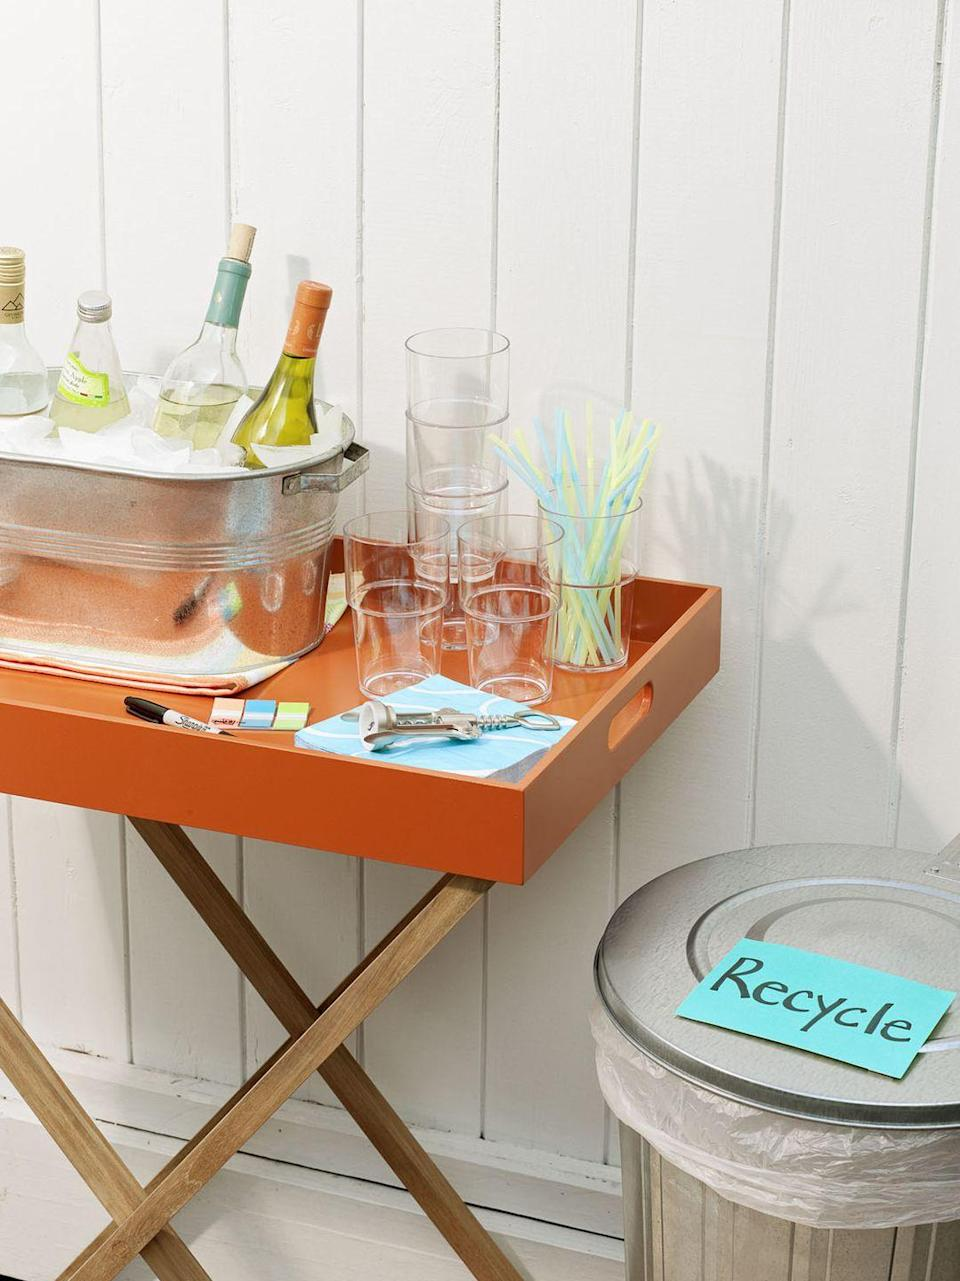 <p>A beverage station separate from the food lets guests mix drinks and mingle. Stock the bar with cups, straws (to double as stirrers) and plenty of ice — a large metal pail will keep bottles and cans frosty, but consider an insulated cooler for extra cubes. </p>